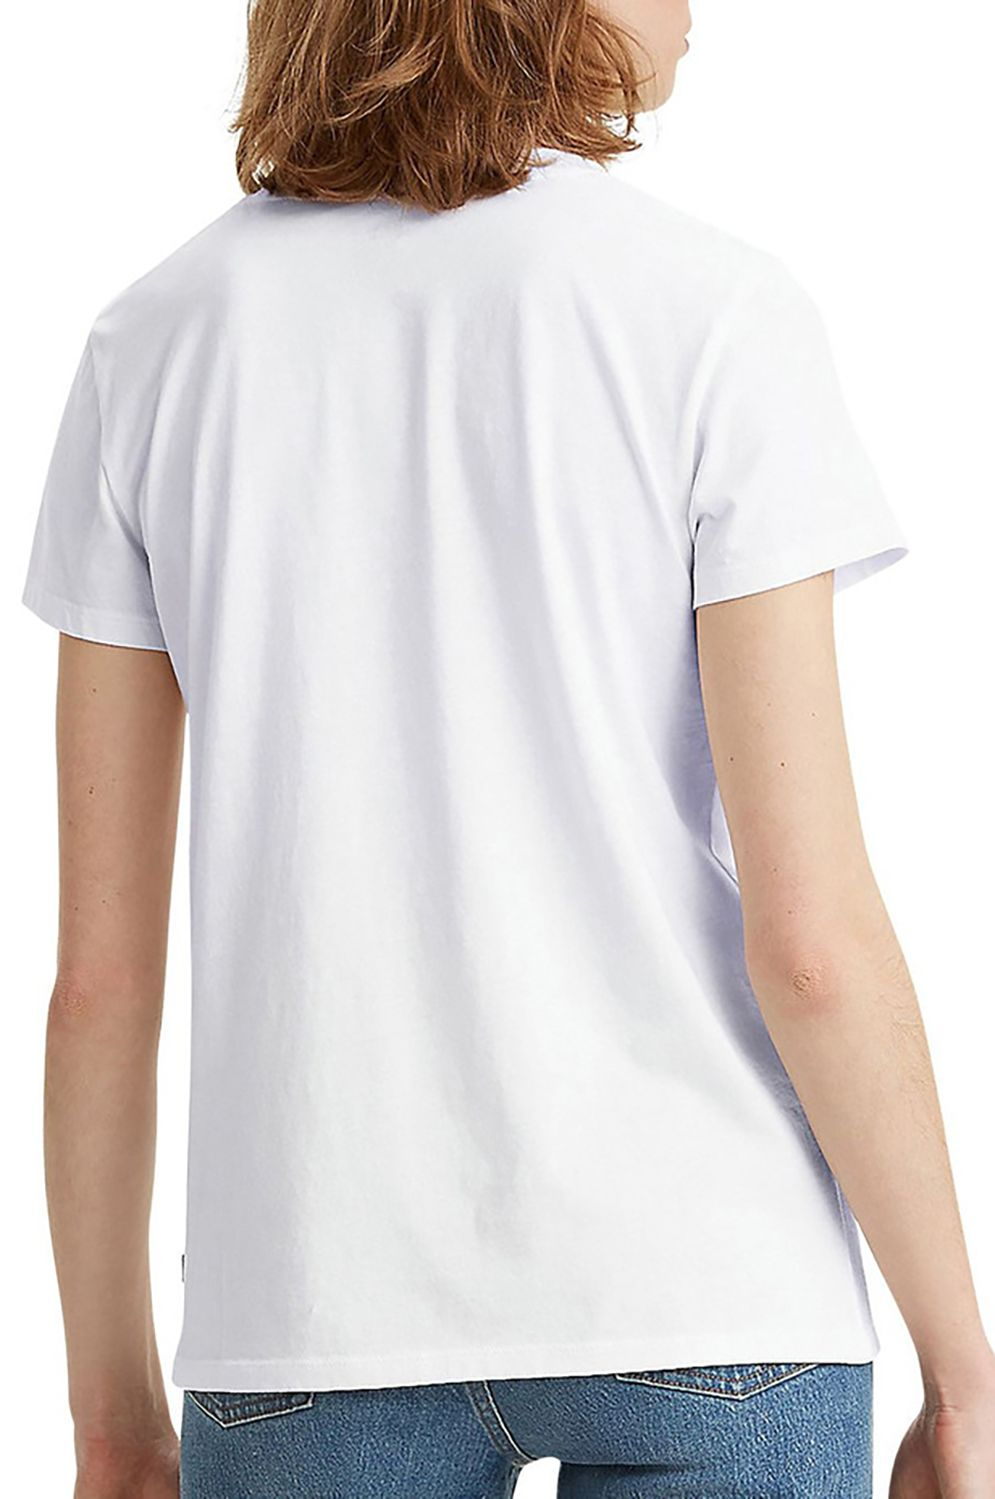 T-Shirt Levis THE PERFECT TEE Feminnine Logo With Technique White+